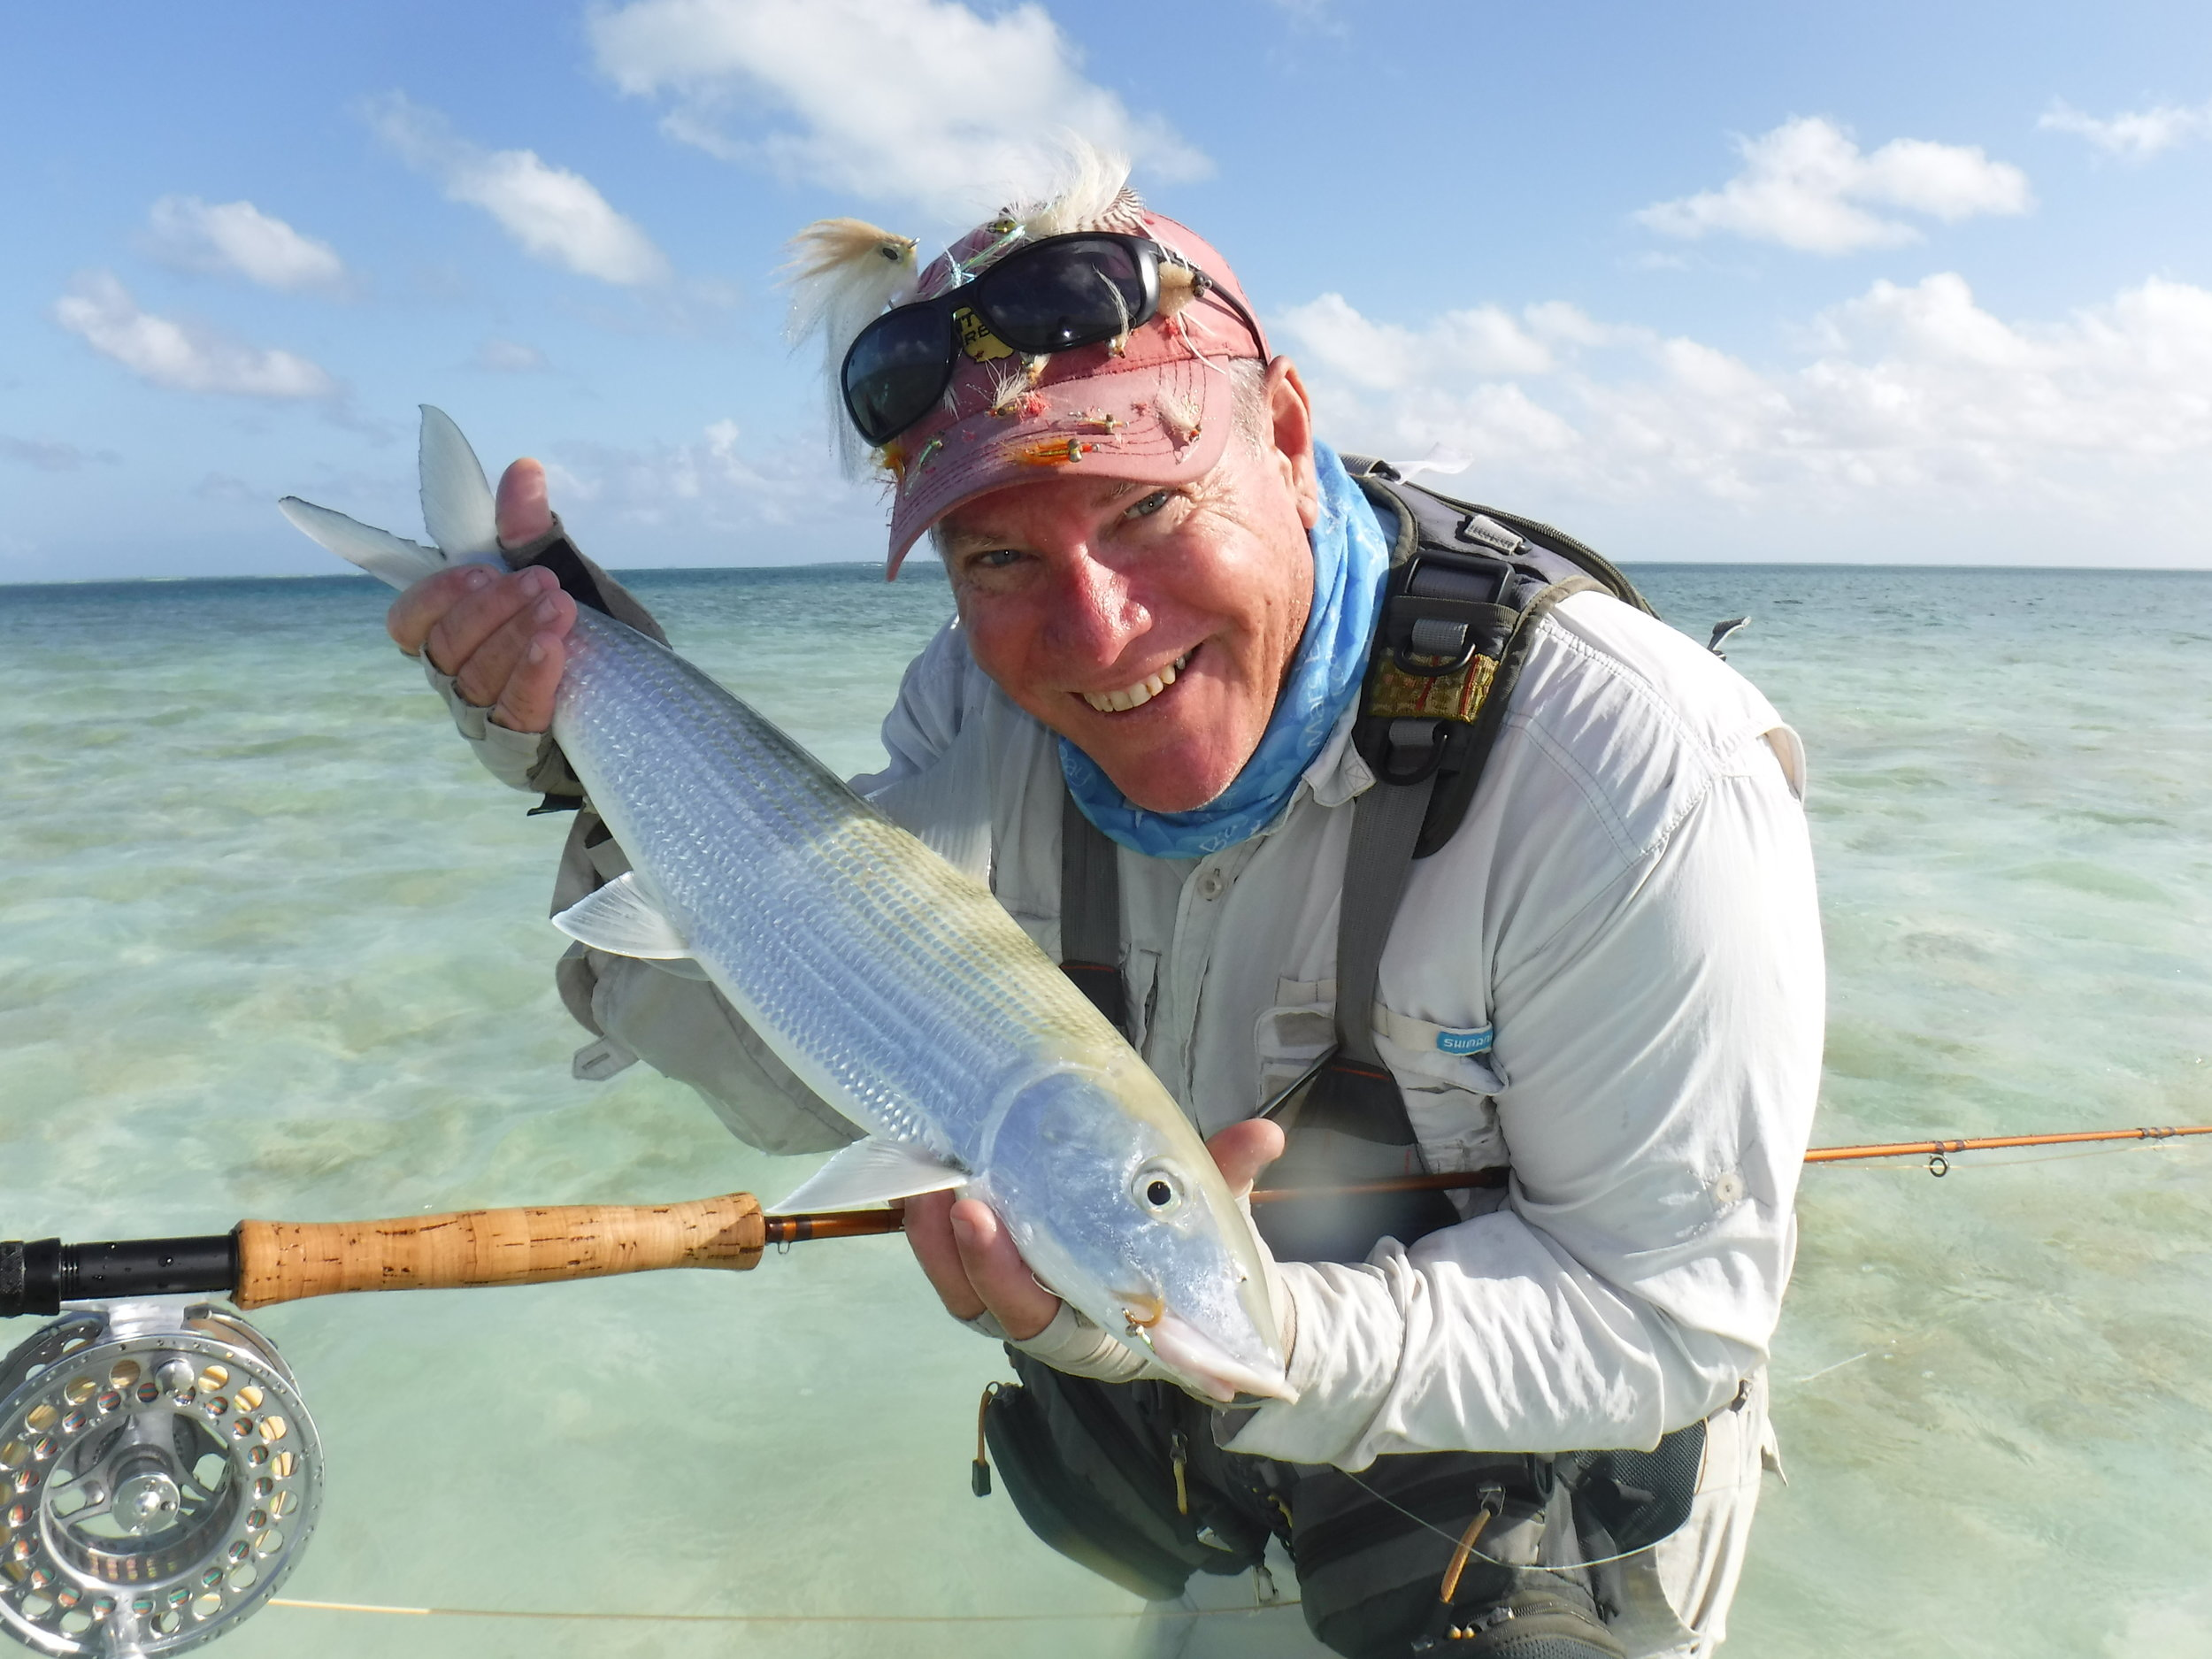 The fish it is all about. A Christmas Island Bonefish